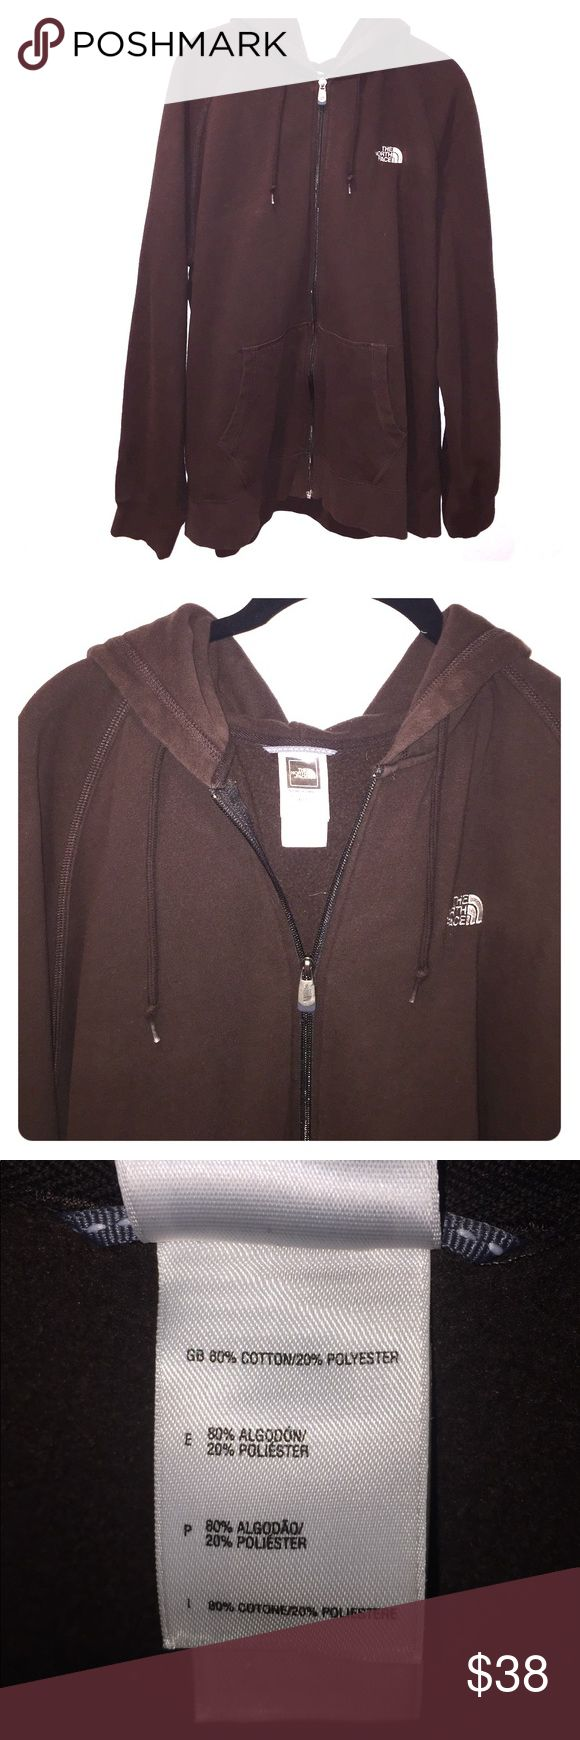 North Face Zip Up Sweatshirt North Face brown zip up sweatshirt. So comfortable! North Face Shirts Sweatshirts & Hoodies